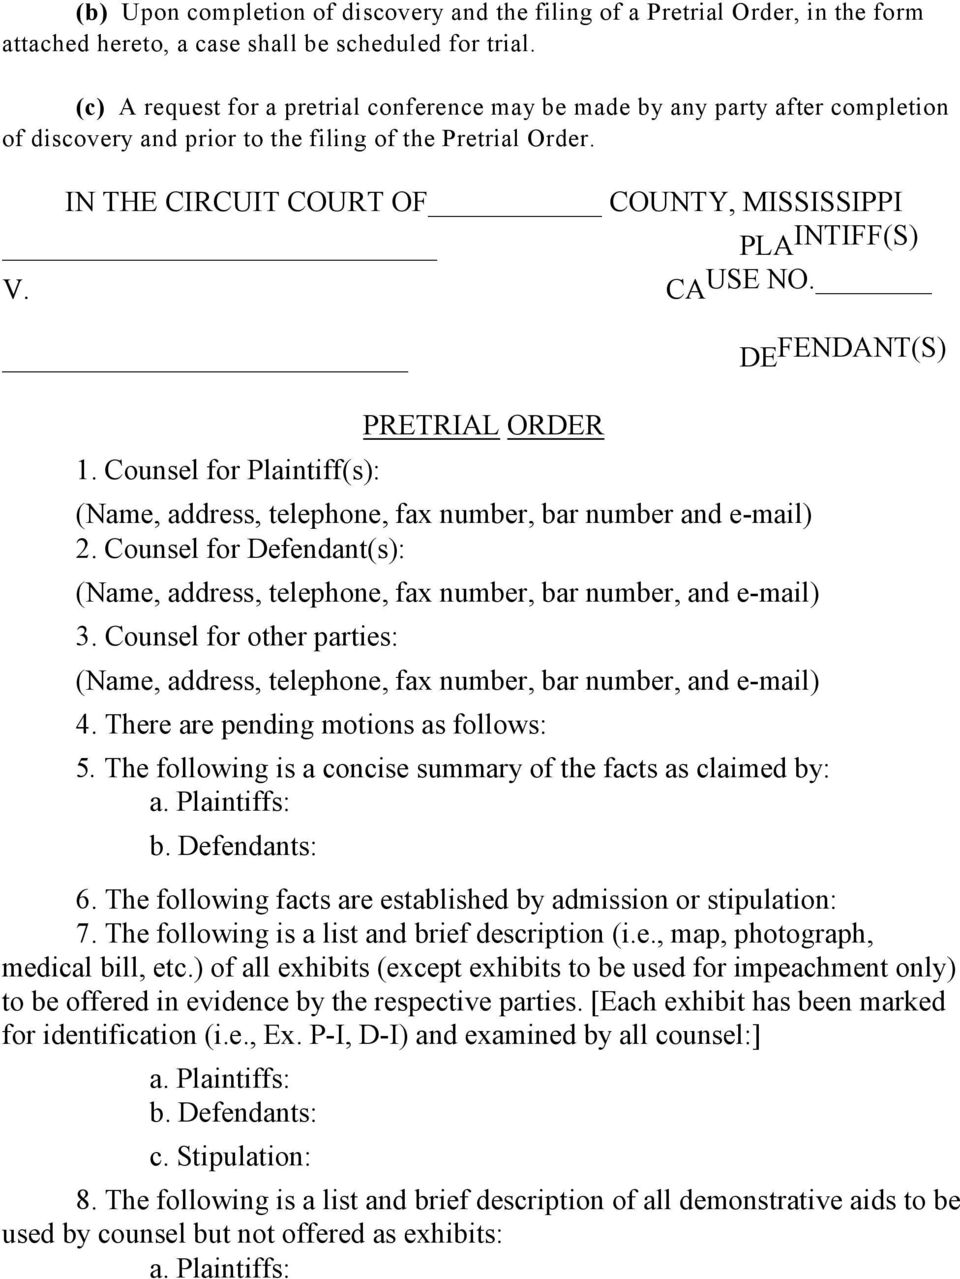 IN THE CIRCUIT COURT OF COUNTY, MISSISSIPPI PLA INTIFF(S) V. CAUSE NO. DE FENDANT(S) PRETRIAL ORDER 1. Counsel for Plaintiff(s): (Name, address, telephone, fax number, bar number and e-mail) 2.